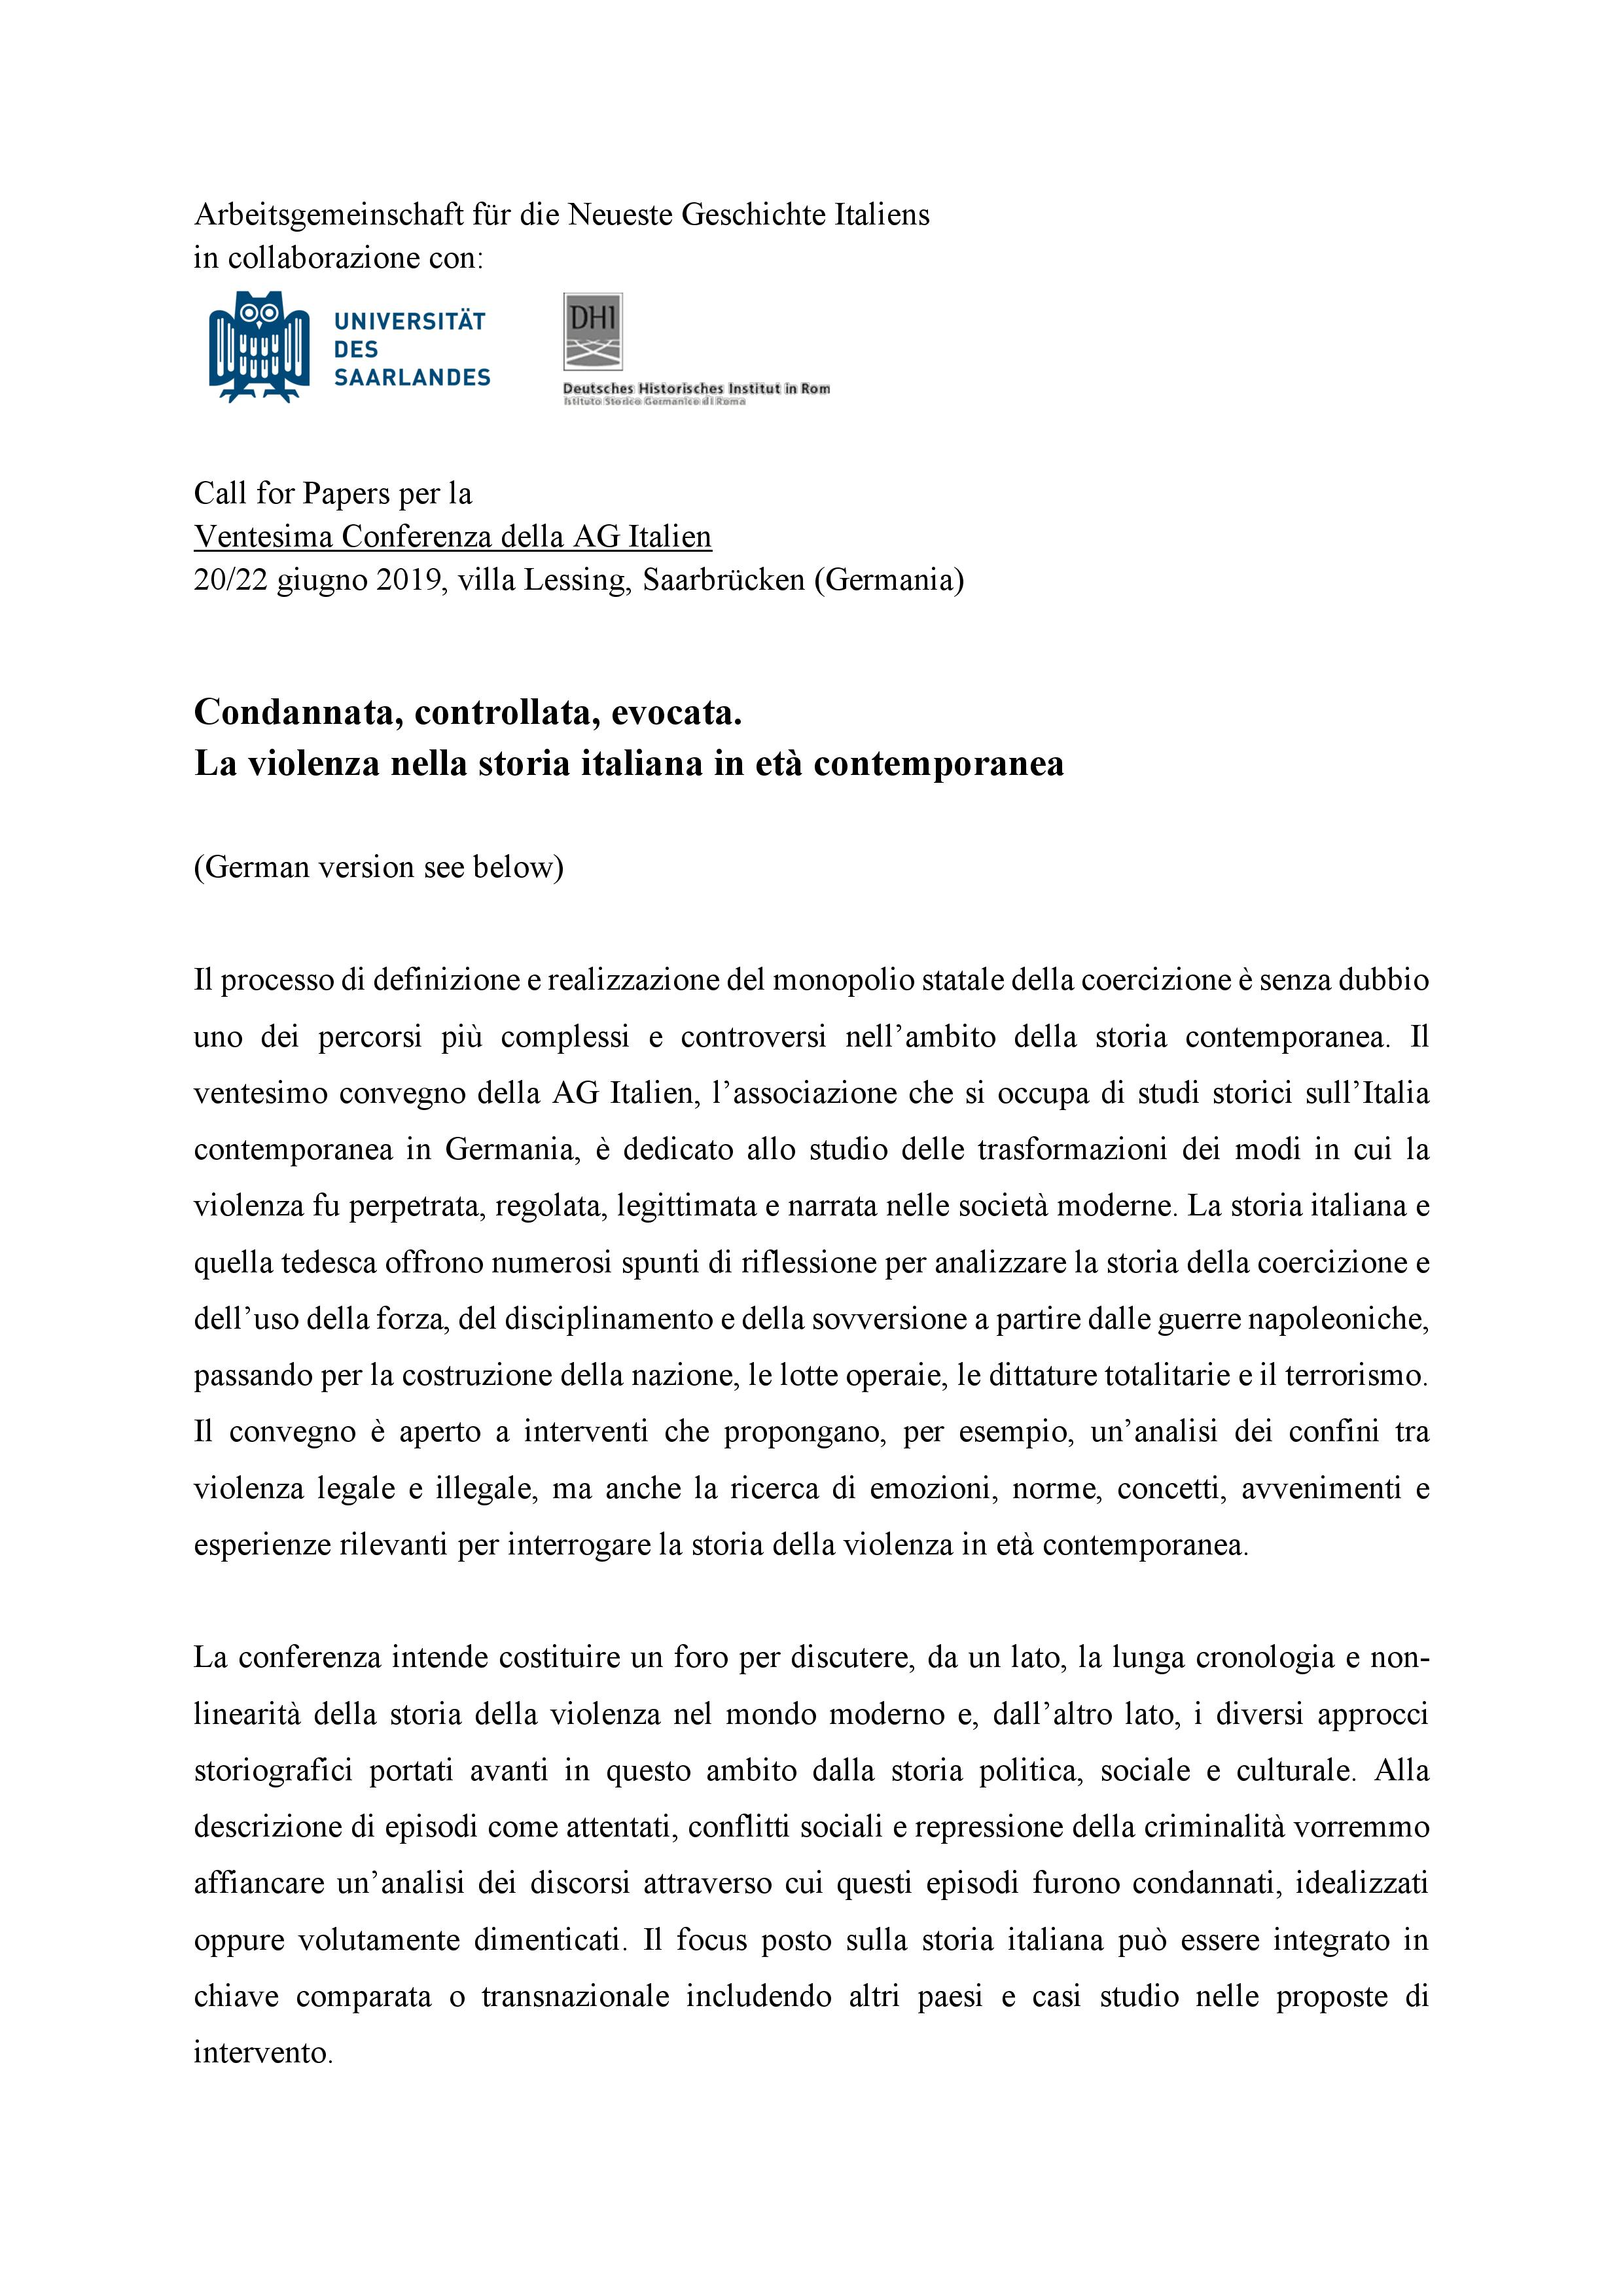 CfP Conferenza AG Italien 2019-page-001